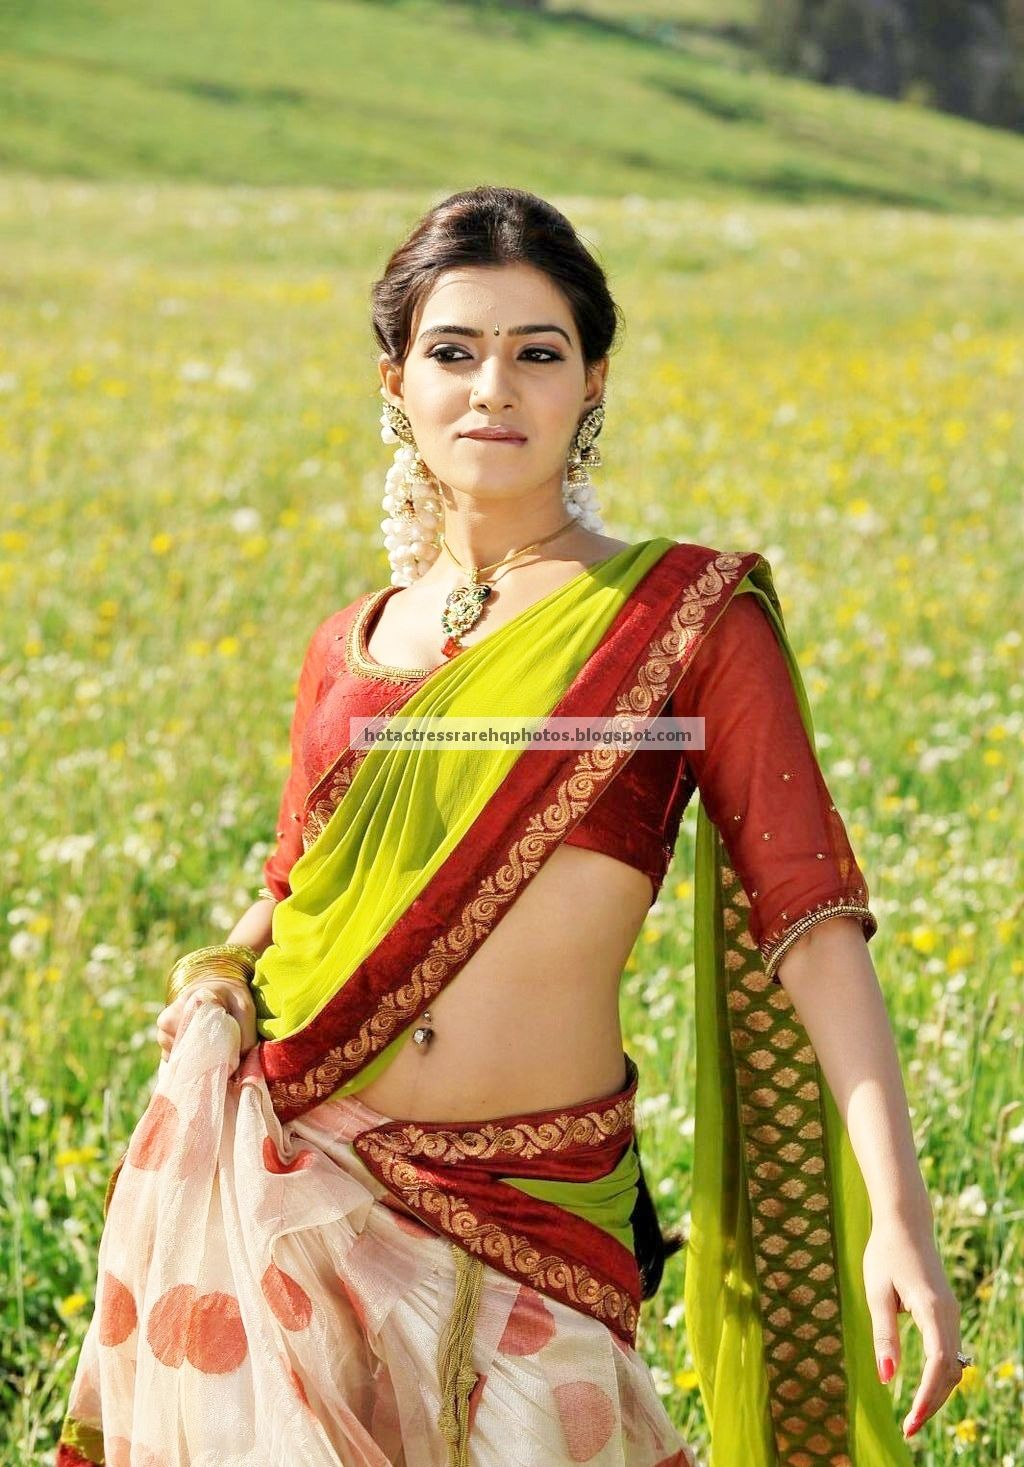 Hot indian actress rare high quality photos south indian actress hot indian actress rare high quality photos south indian actress high quality photos tamil actress and telugu actress hot photos thecheapjerseys Images